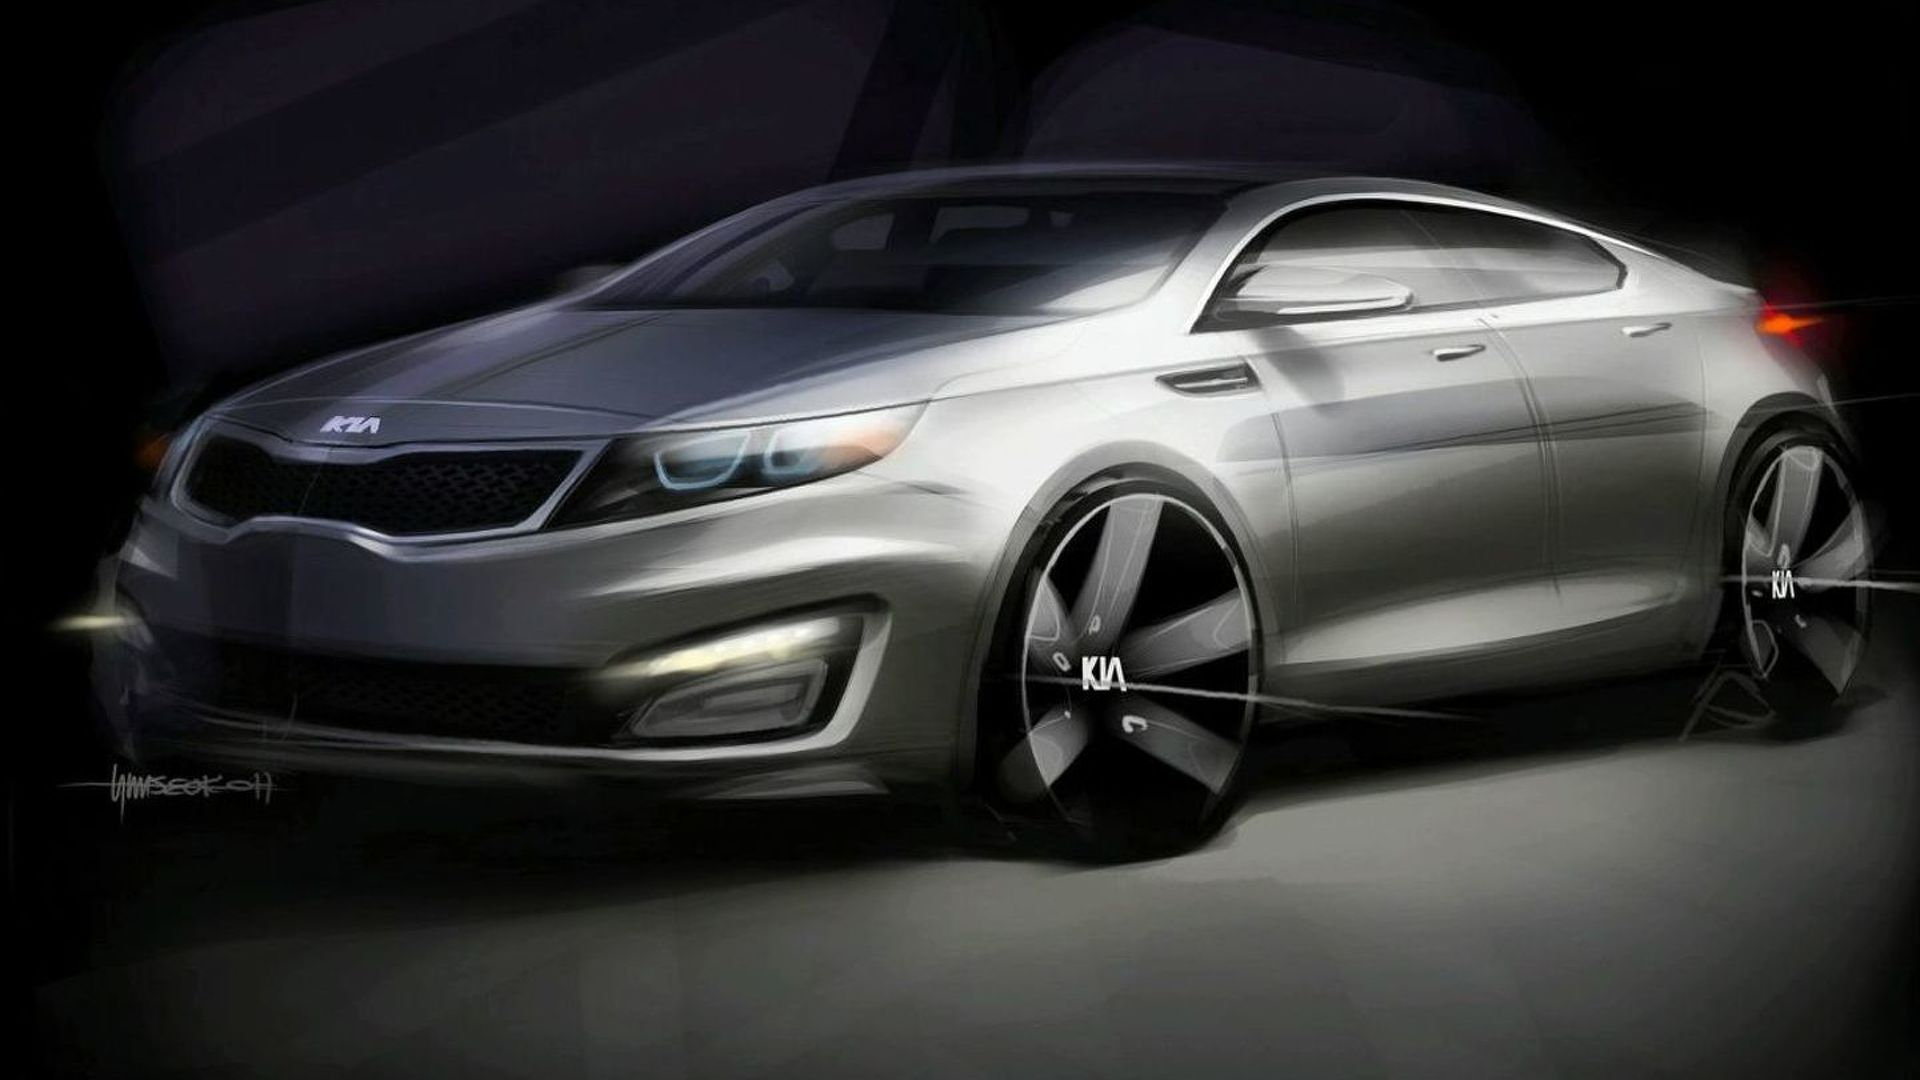 2011 Kia Magentis / Optima Teaser Sketches Released for New York Debut